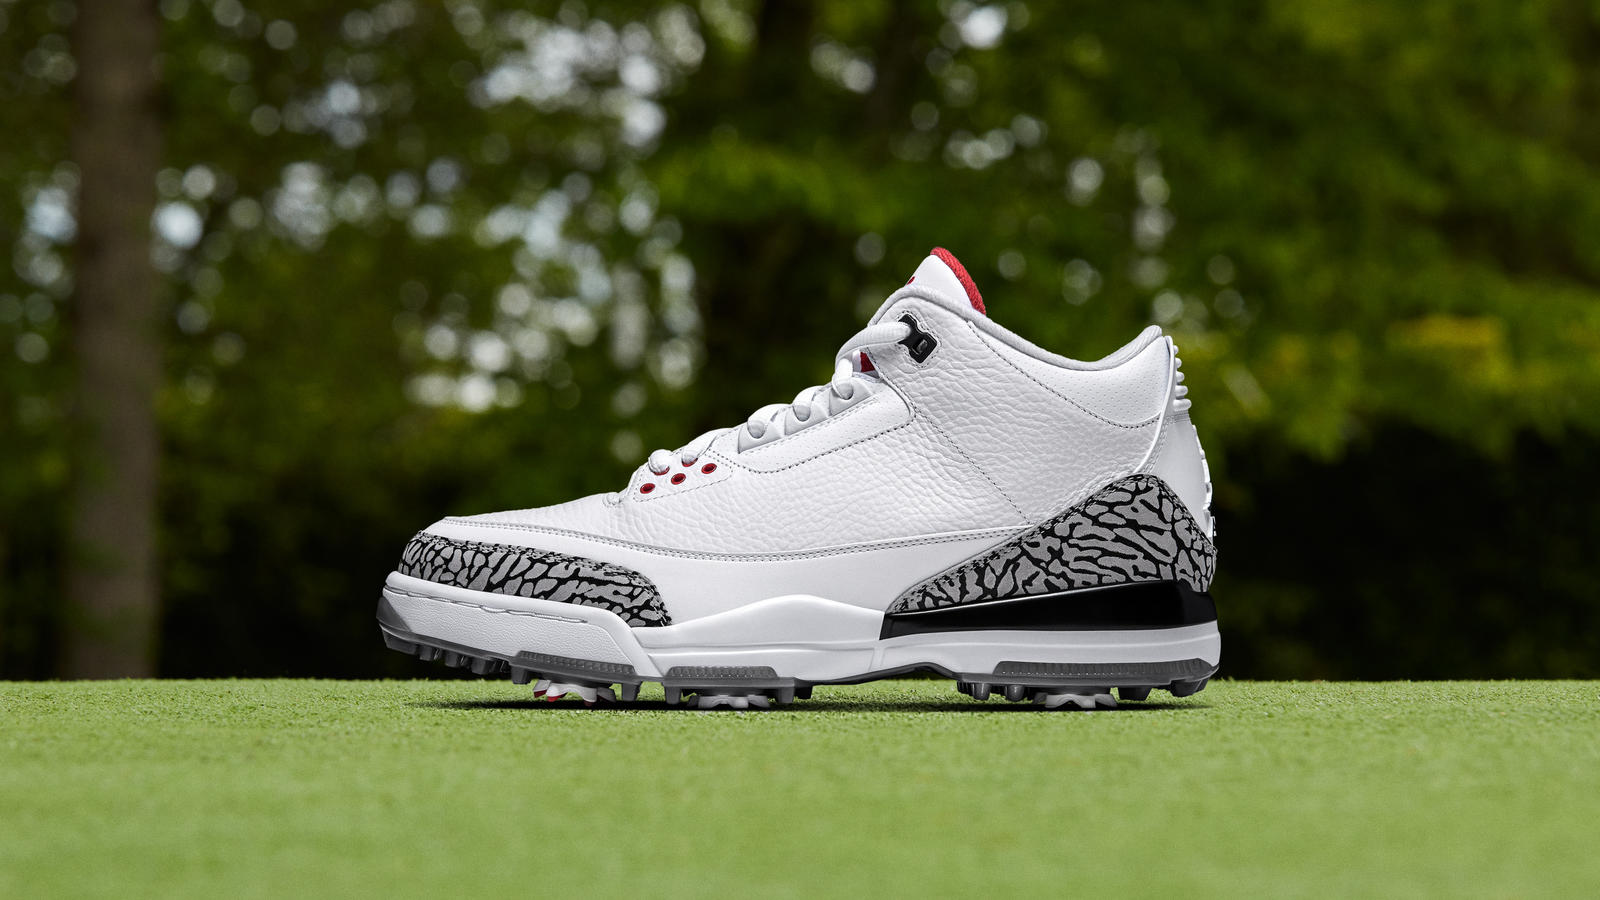 174b7bbd1223 Air Jordan 3 Golf Shoe - Nike News